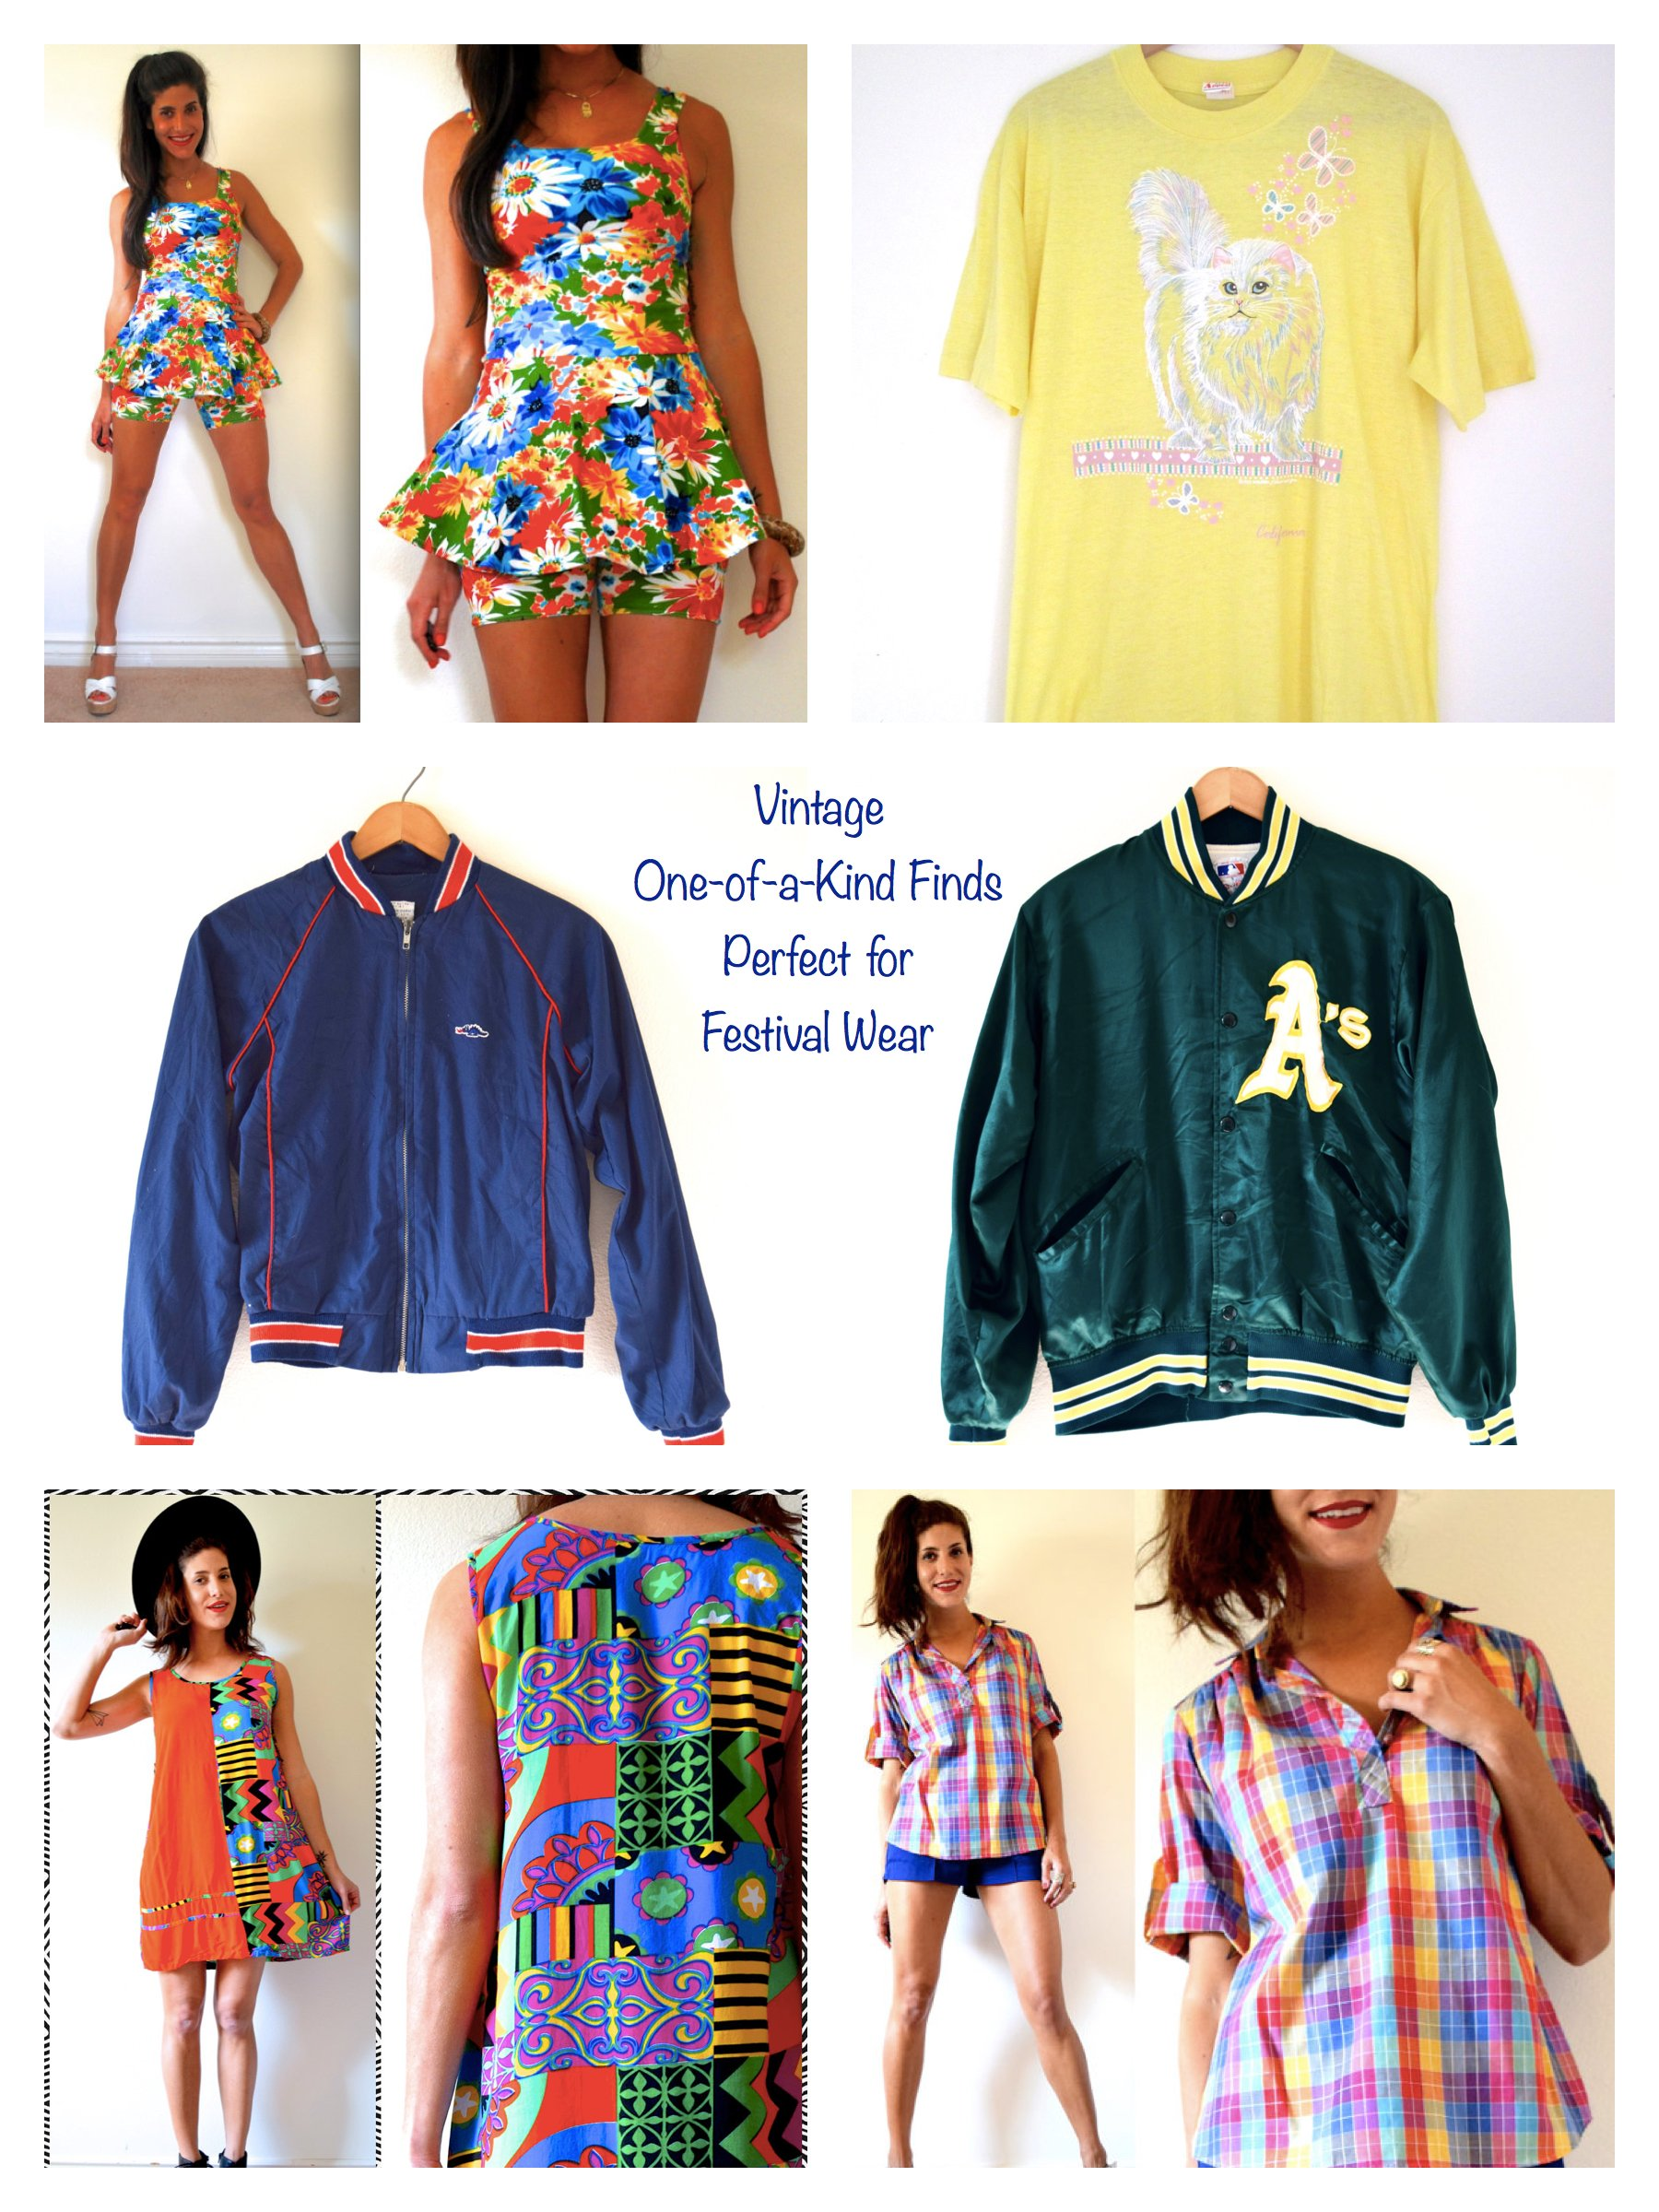 Coachella 2016 fashion Vintage One-of-a-Kind Finds Perfect for Festival Wear